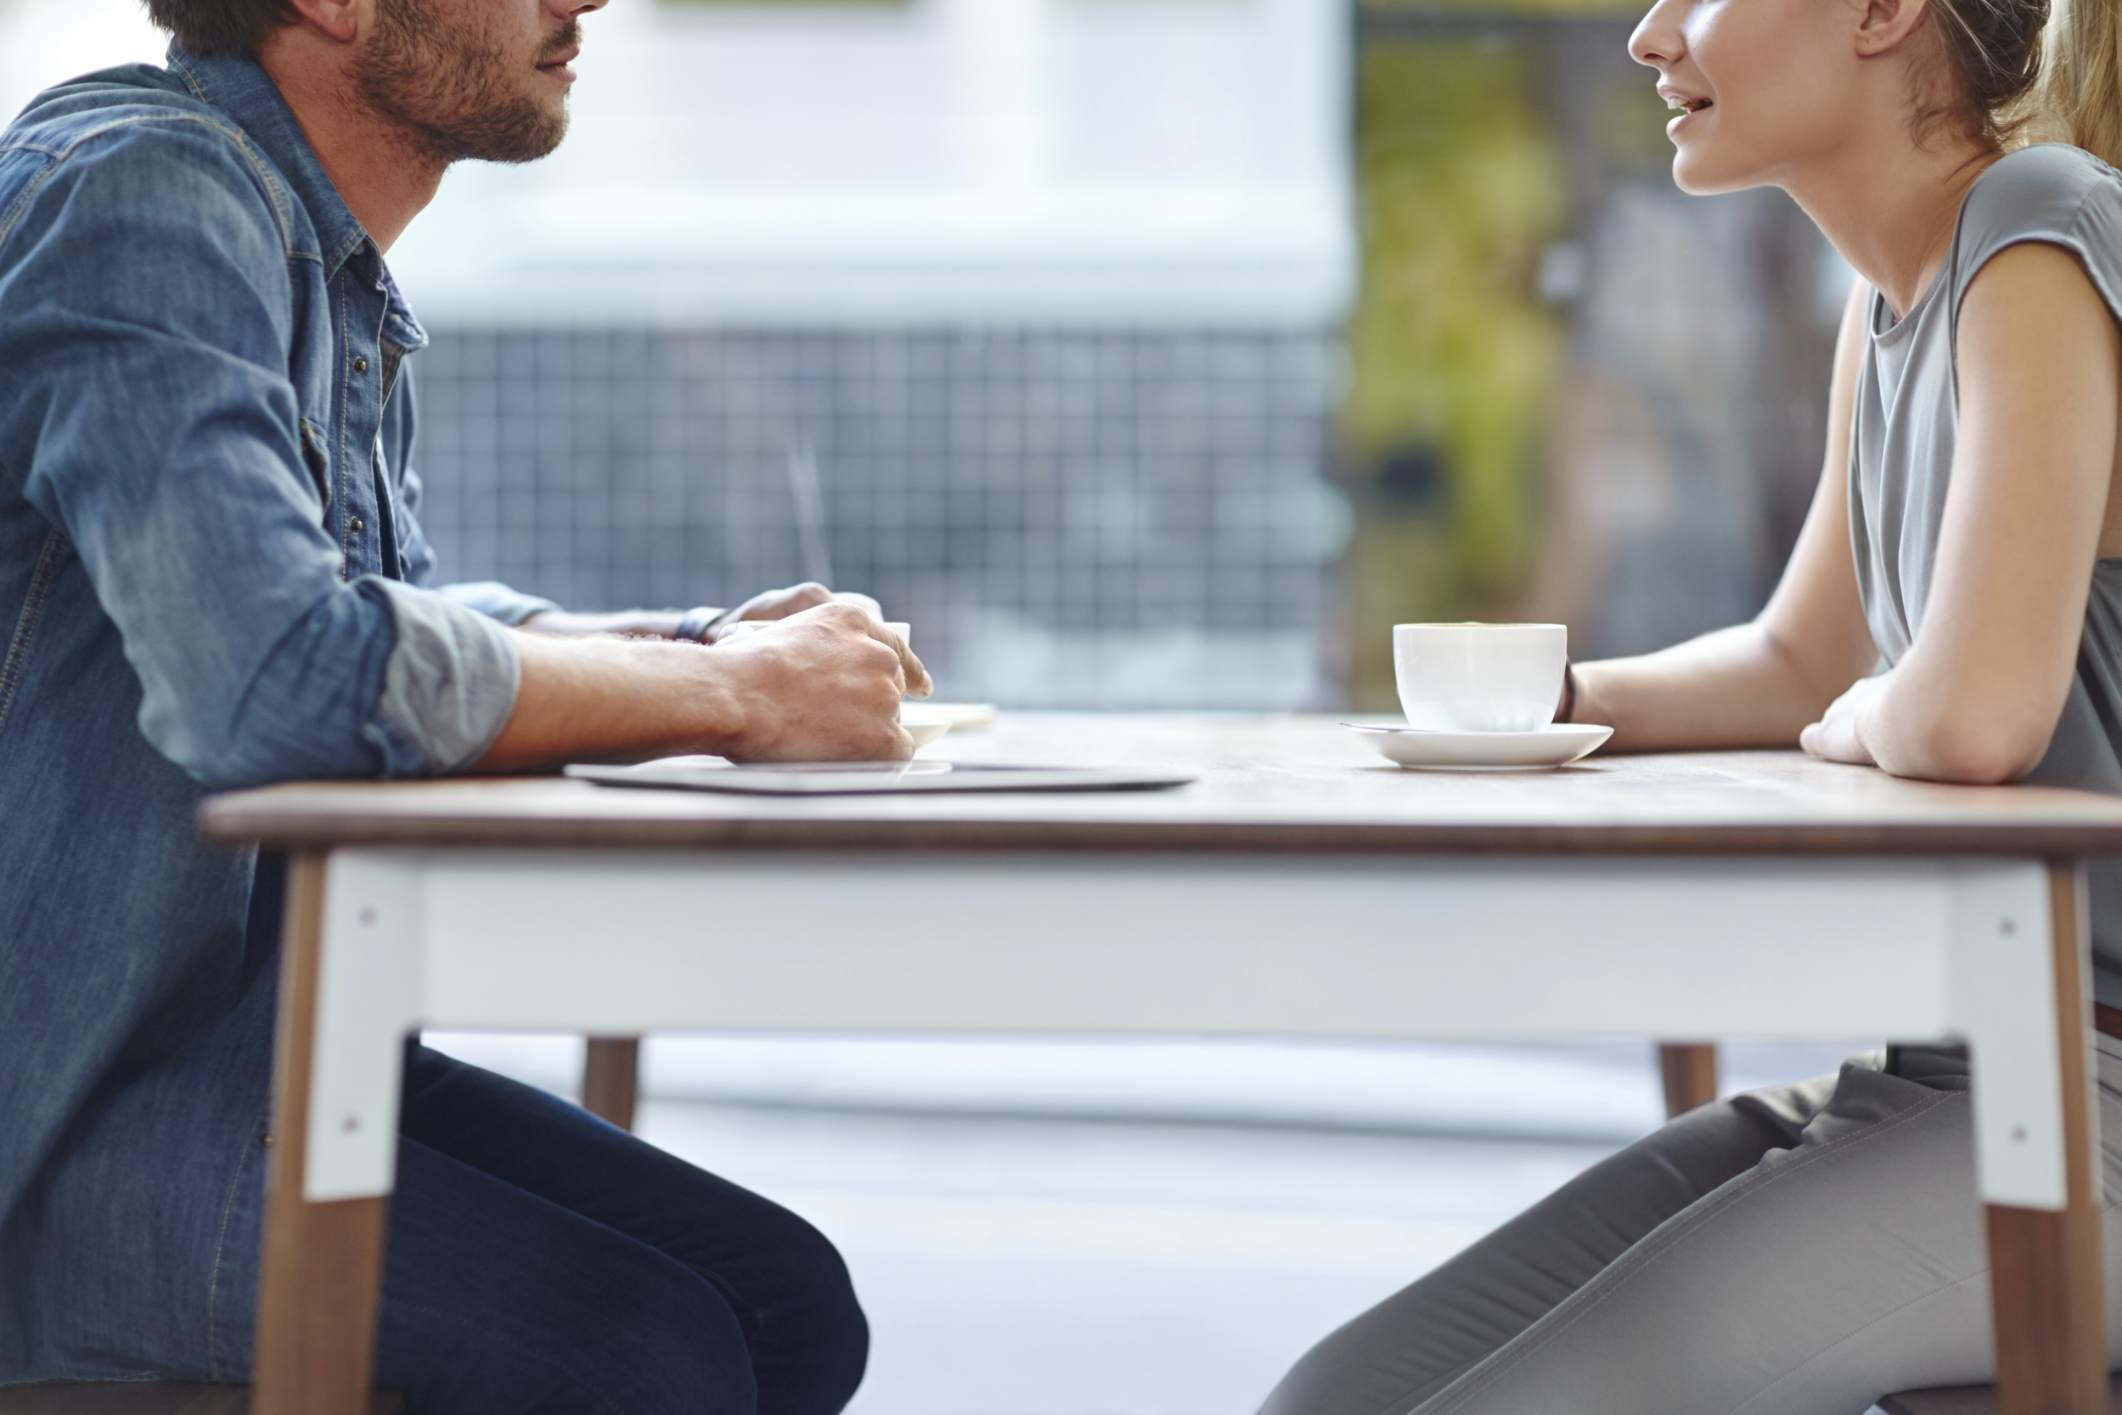 Two people in coffee shop networking about a job